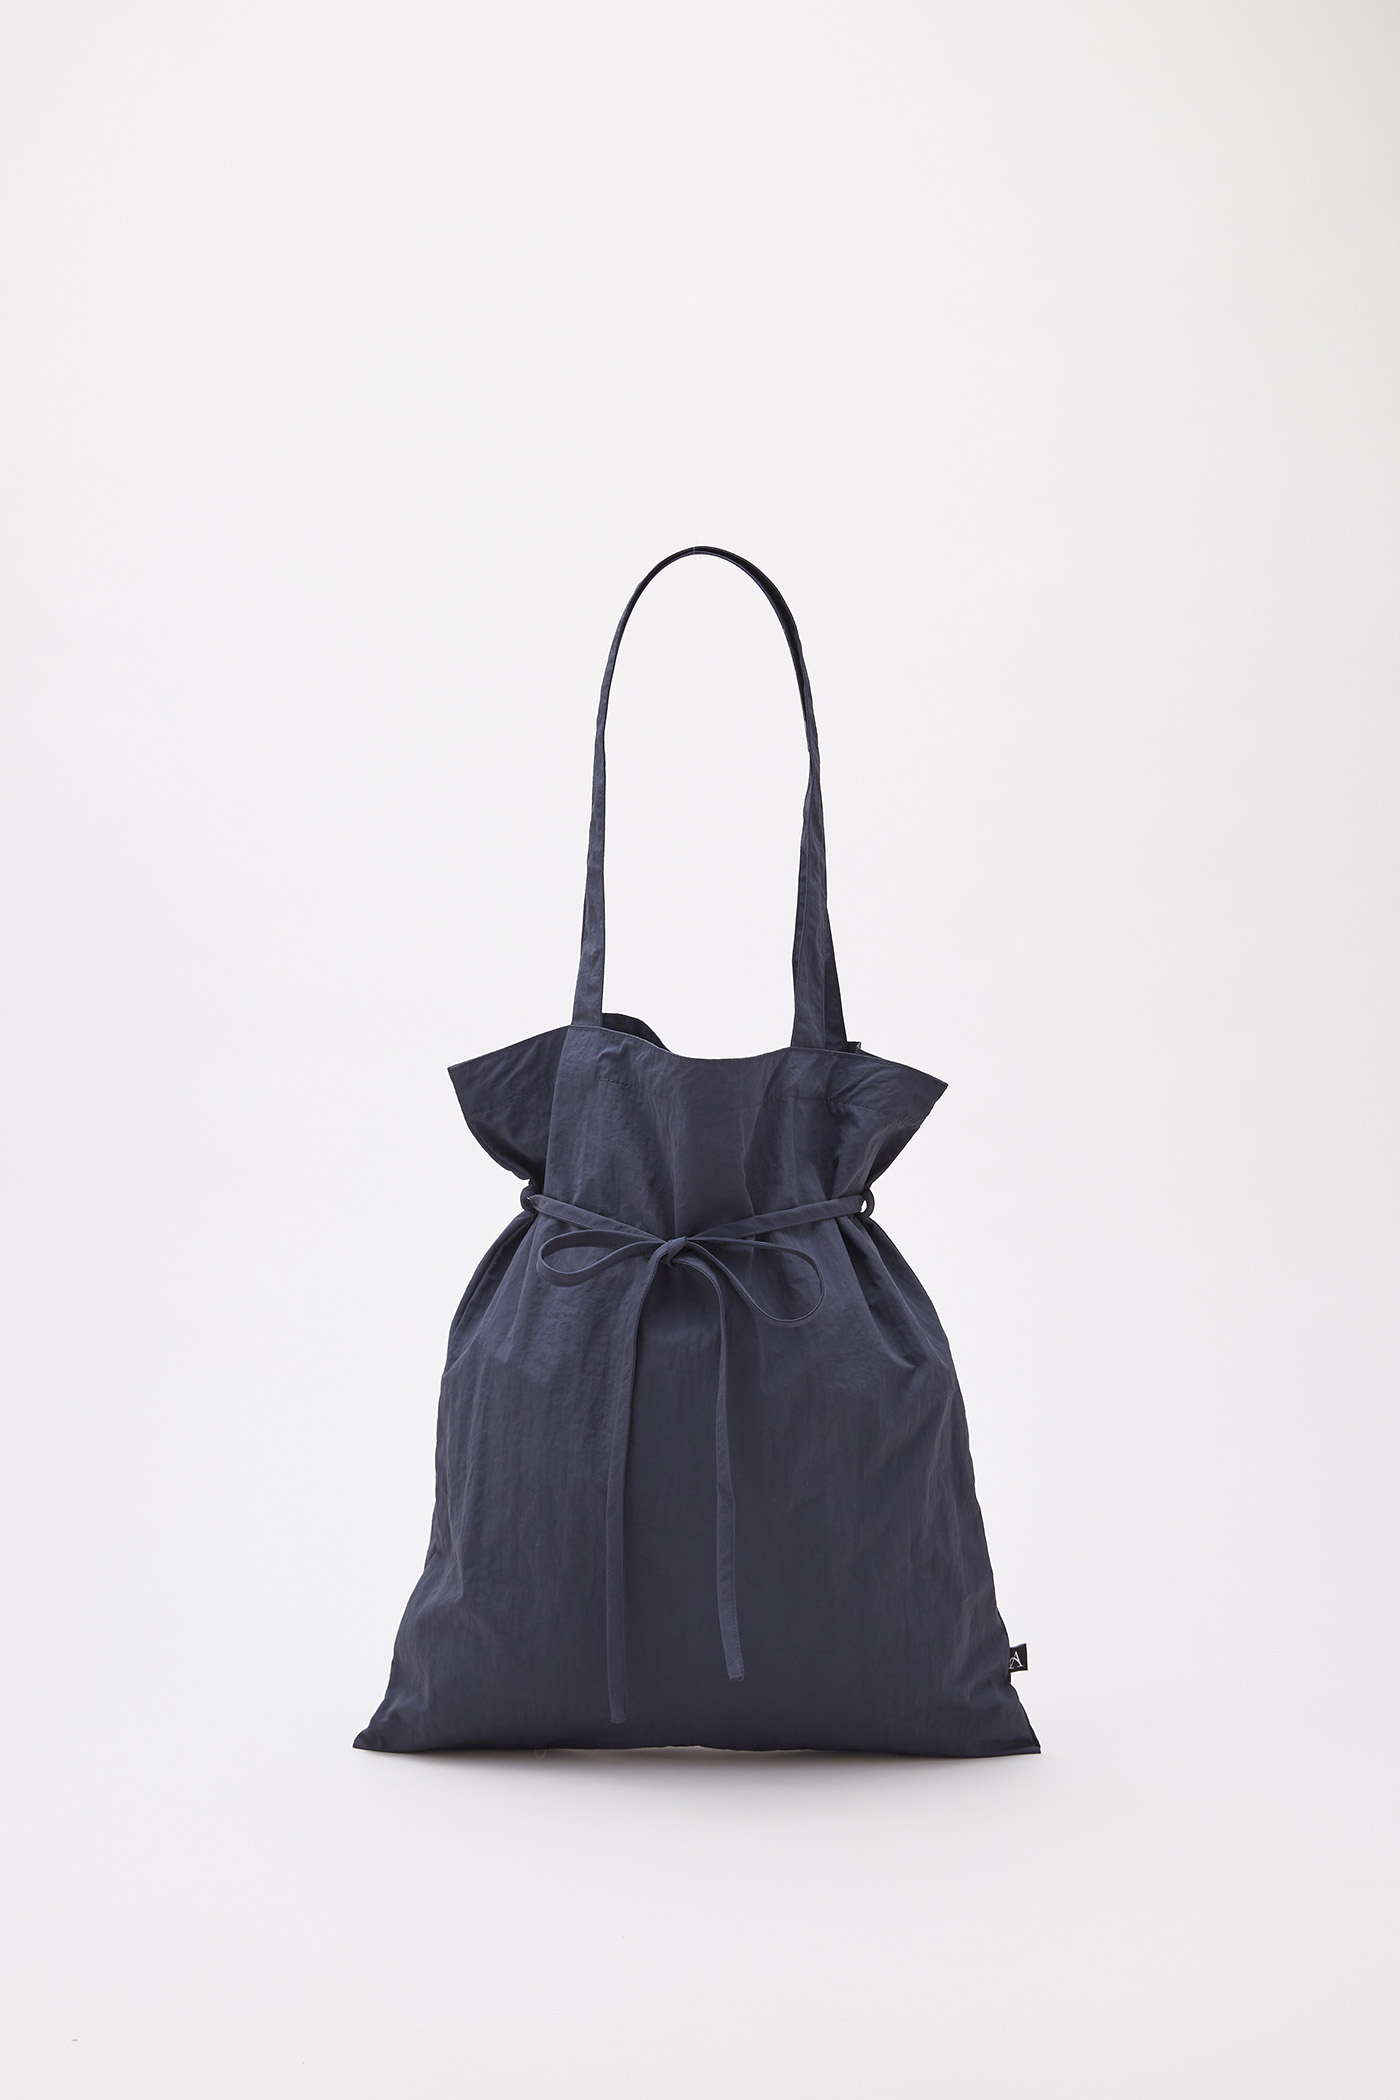 The Belted Tote